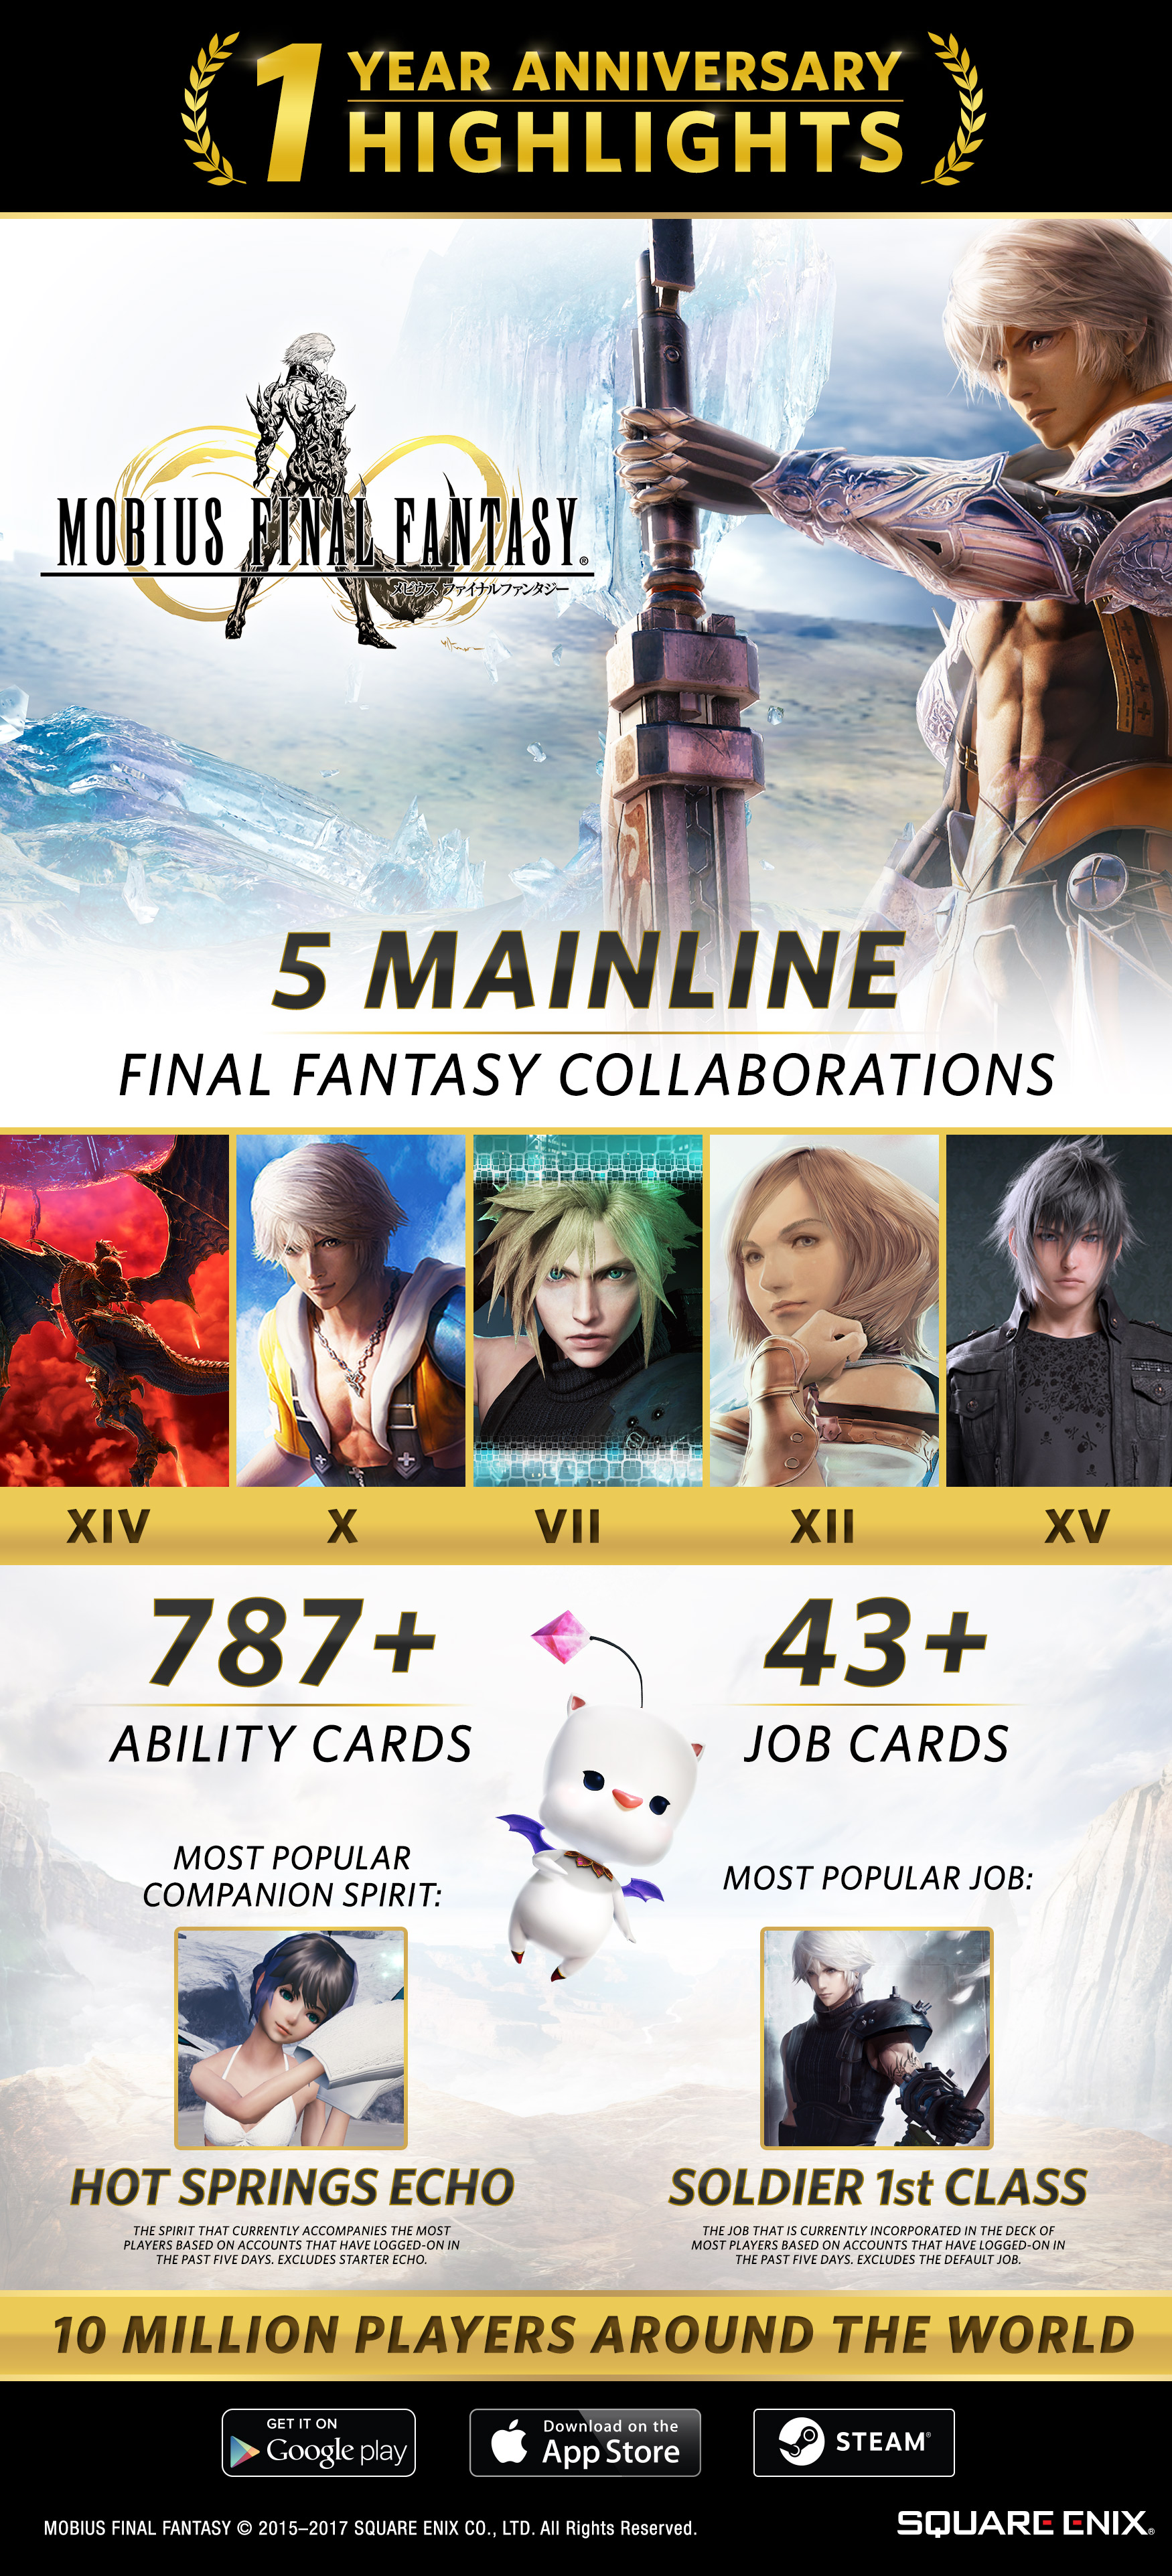 Mobius Final Fantasy Infographic